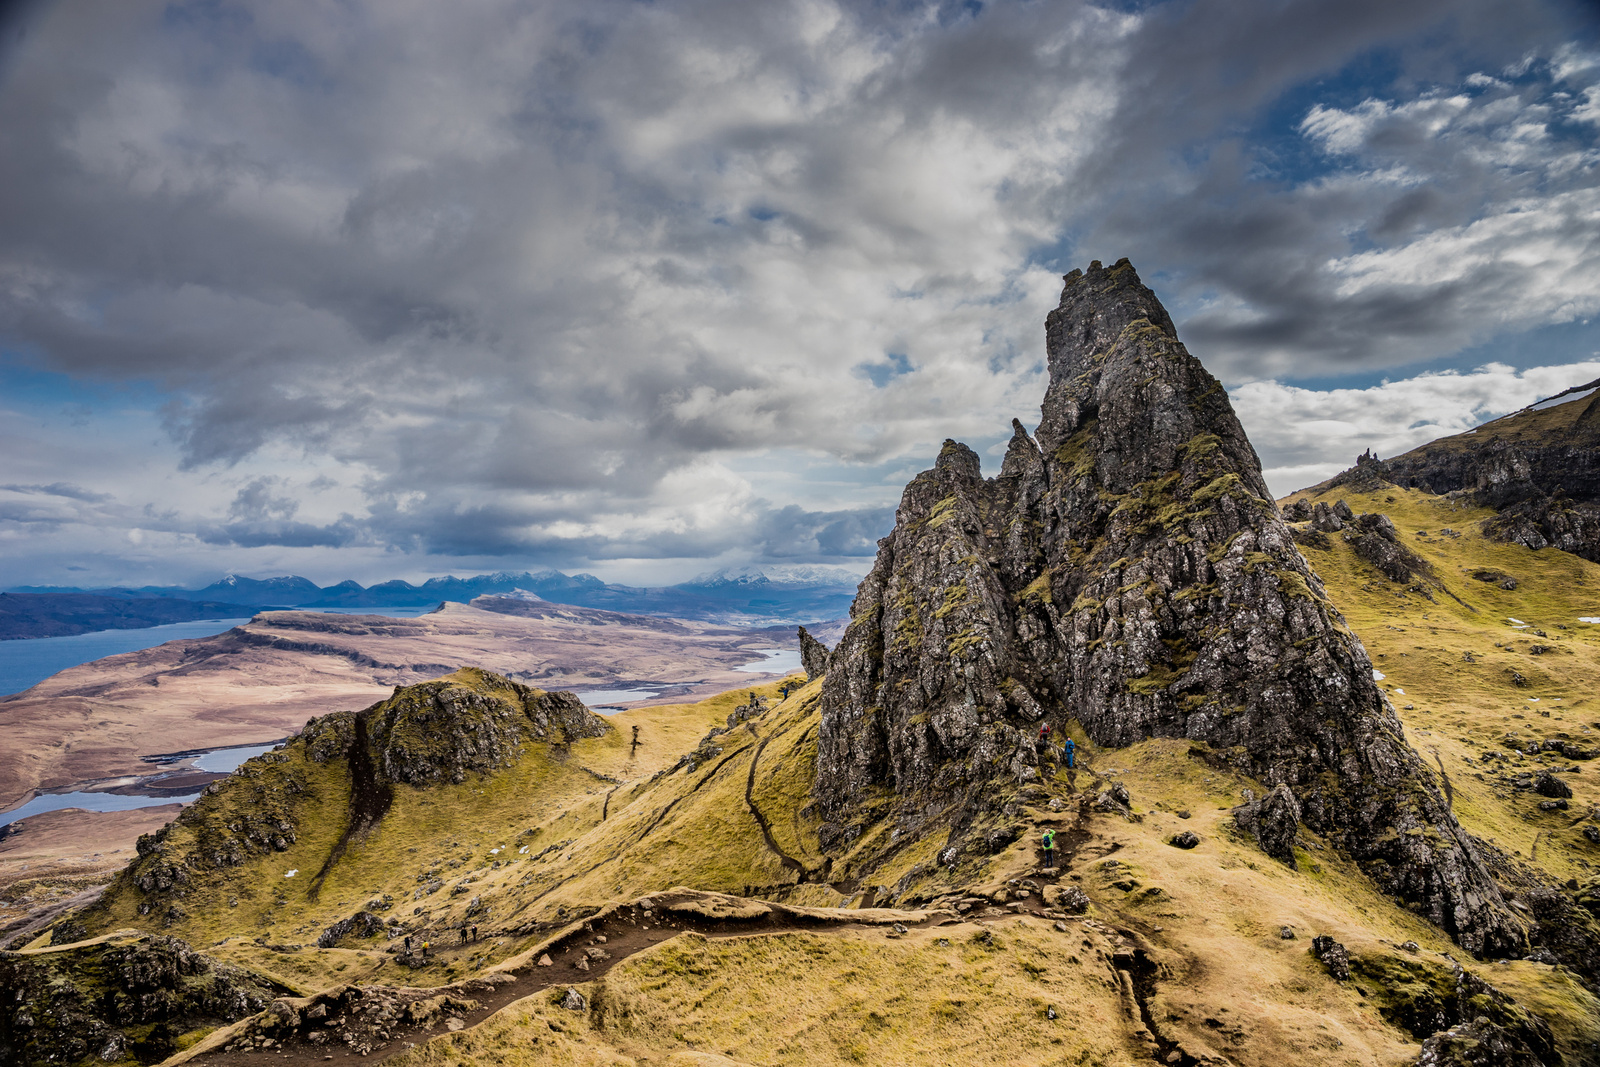 The Old Man of Storr környéke